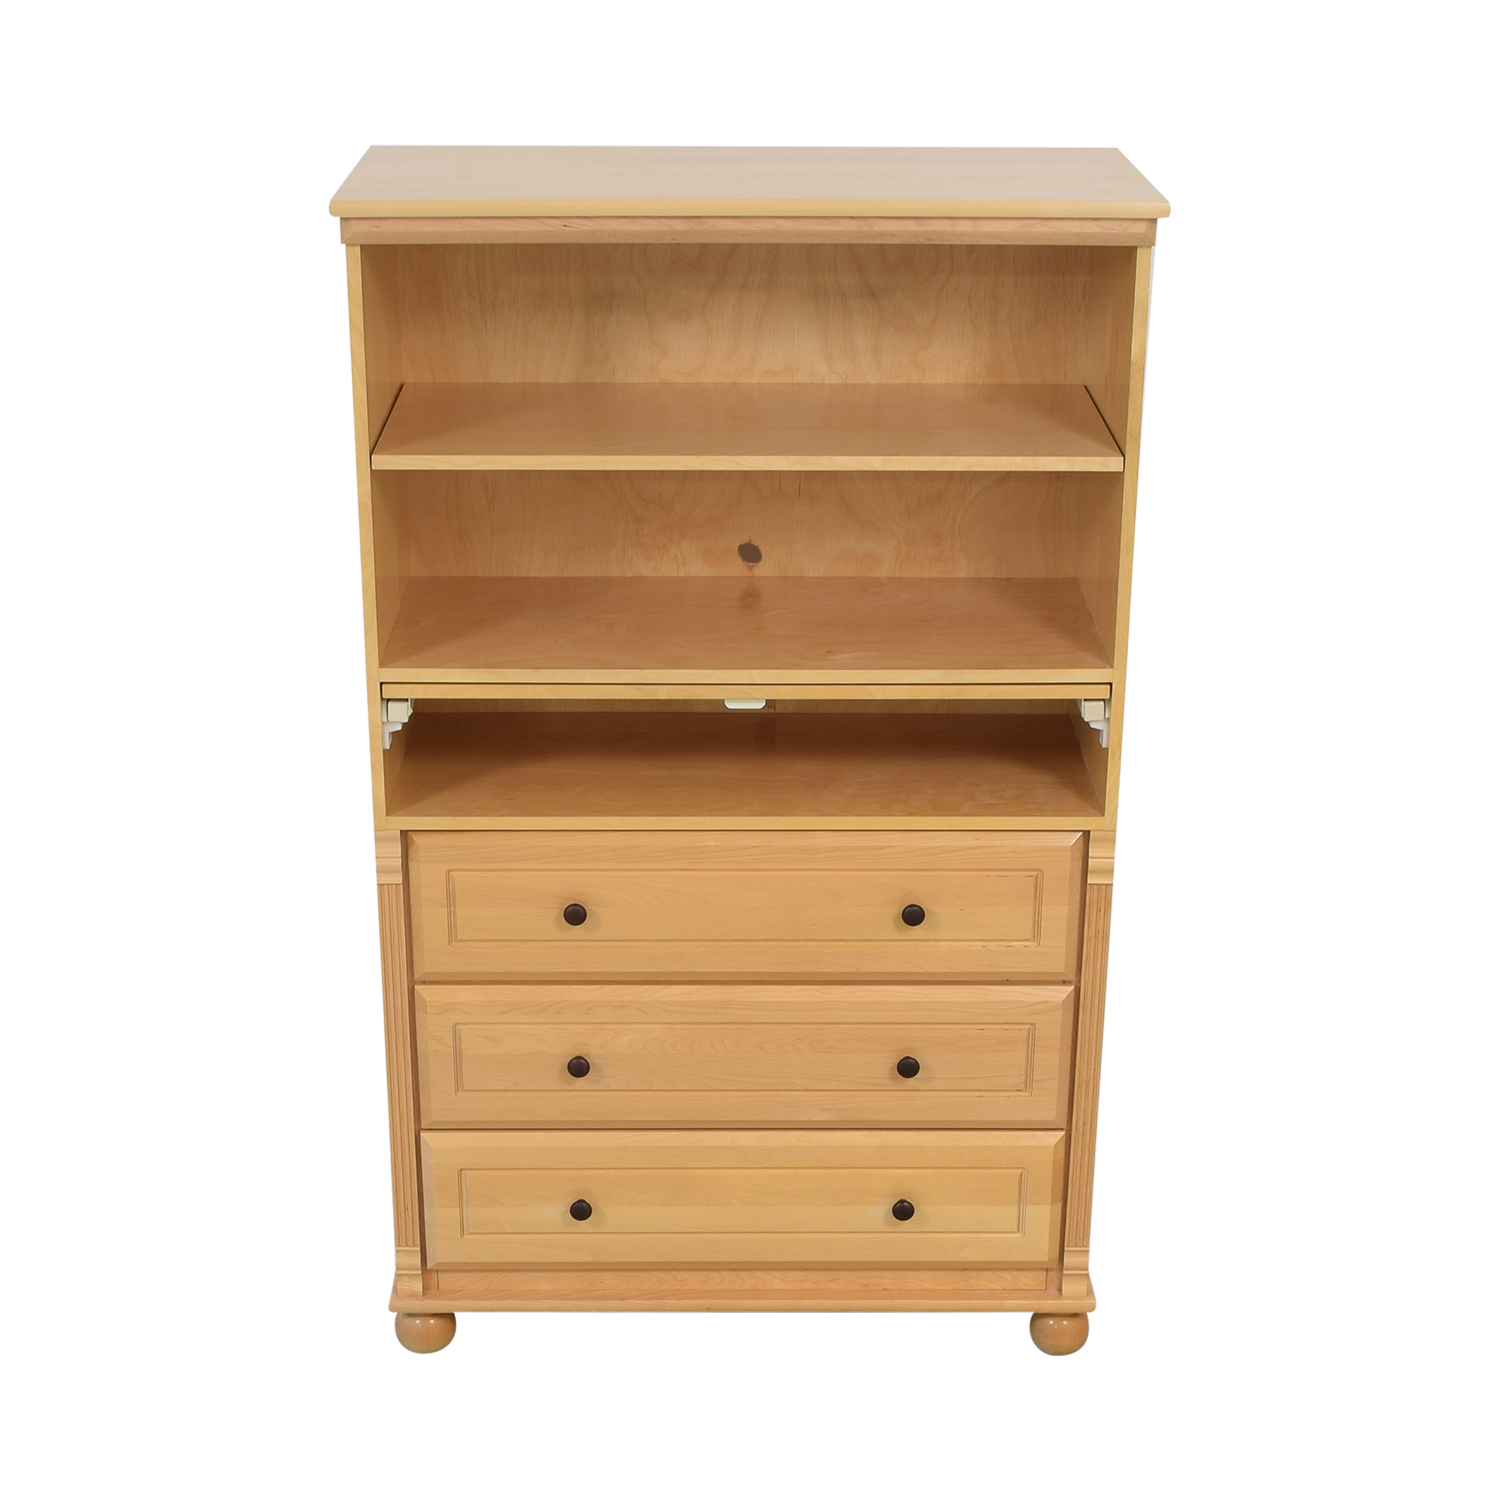 Bellini Bellini Jessica Dresser with Changing Table pa